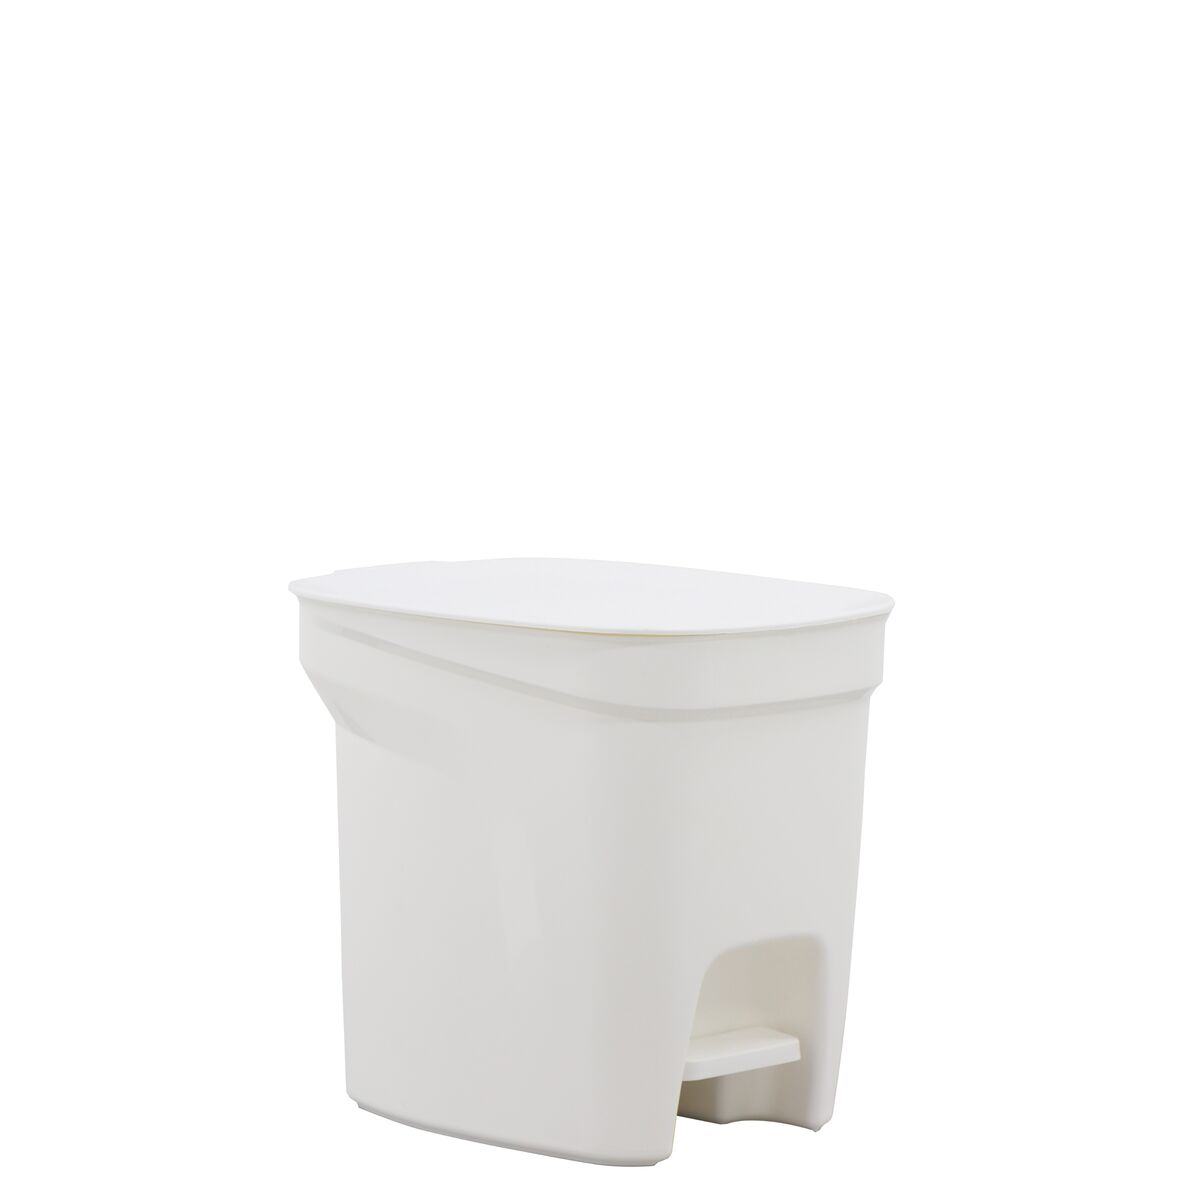 Tramontina Compact White Polypropylene Compact Trash Can with a Galvanized Steel Rod 7L